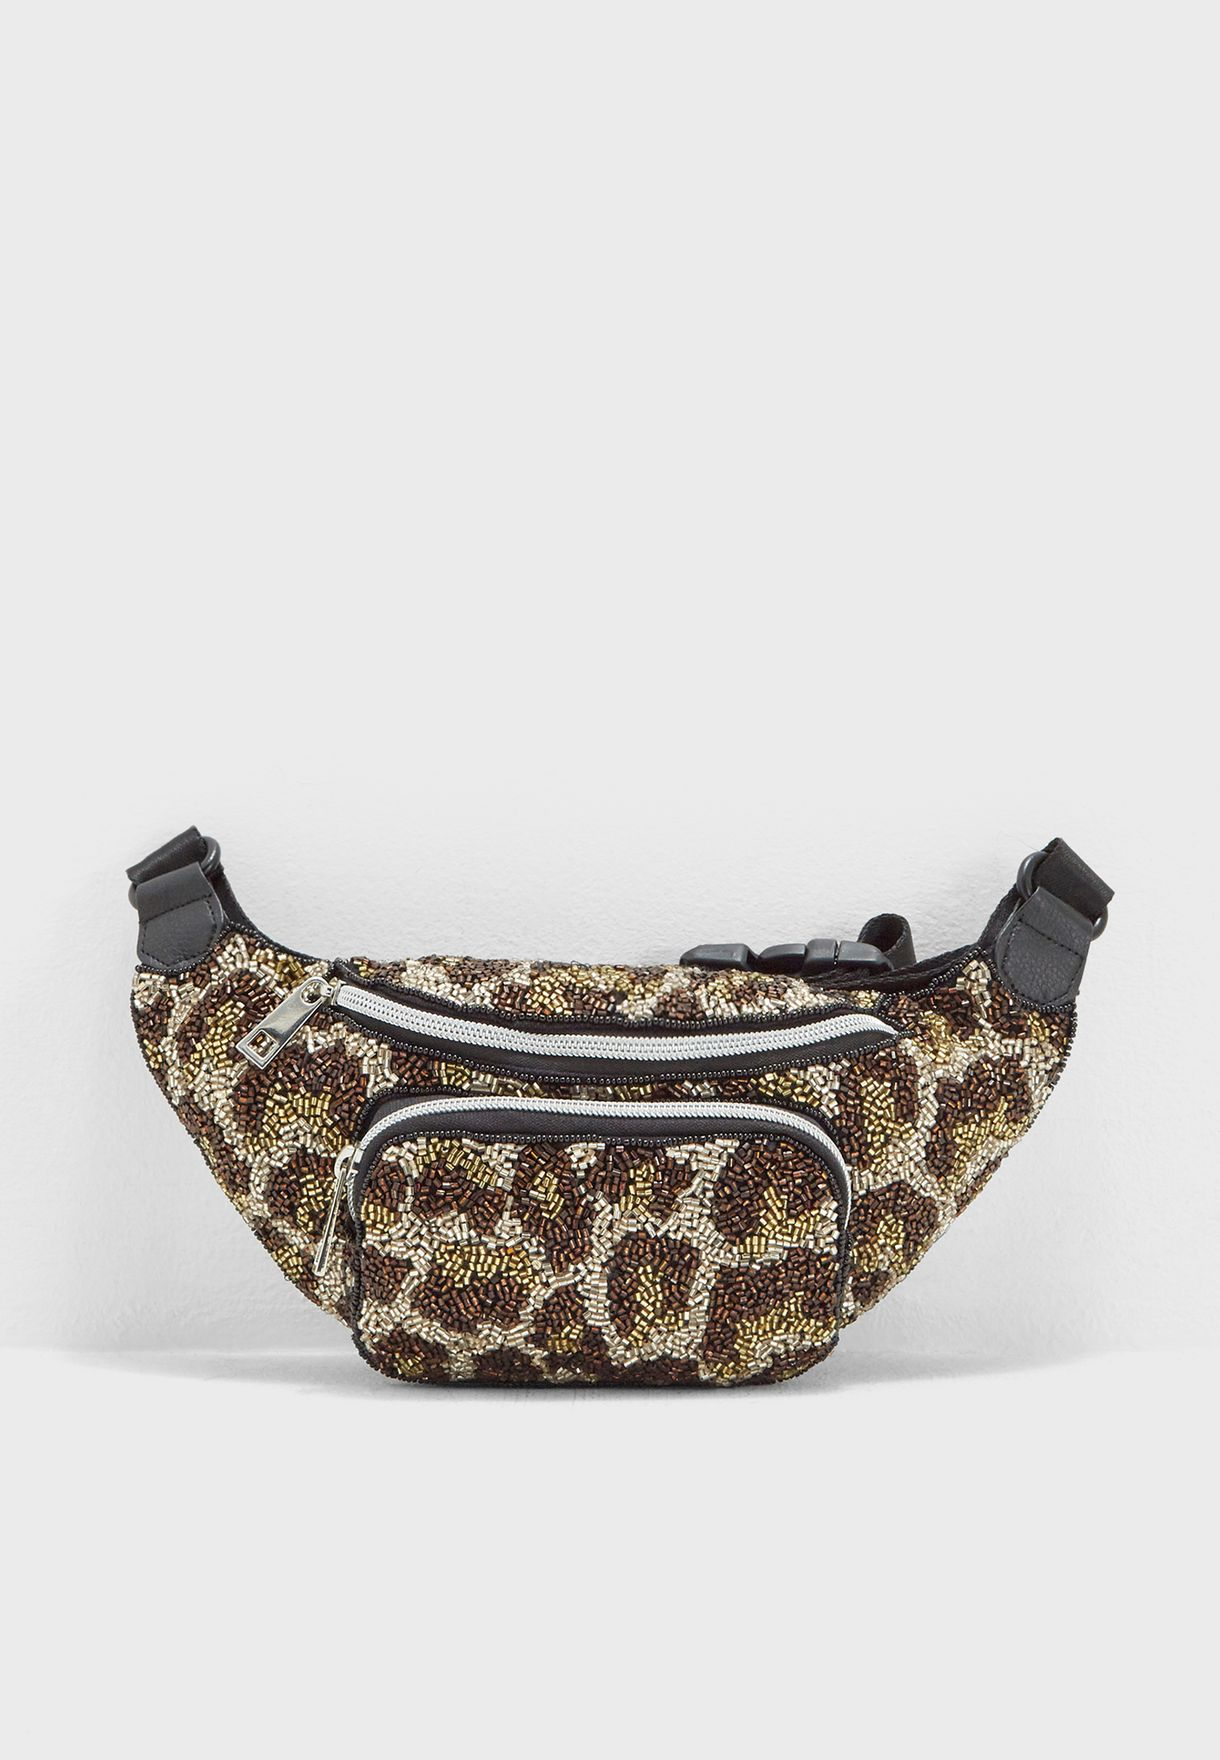 d20311d0aeb6 Shop Topshop multicolor Leopard Beaded Bumbag 24I39NMUL for Women in ...